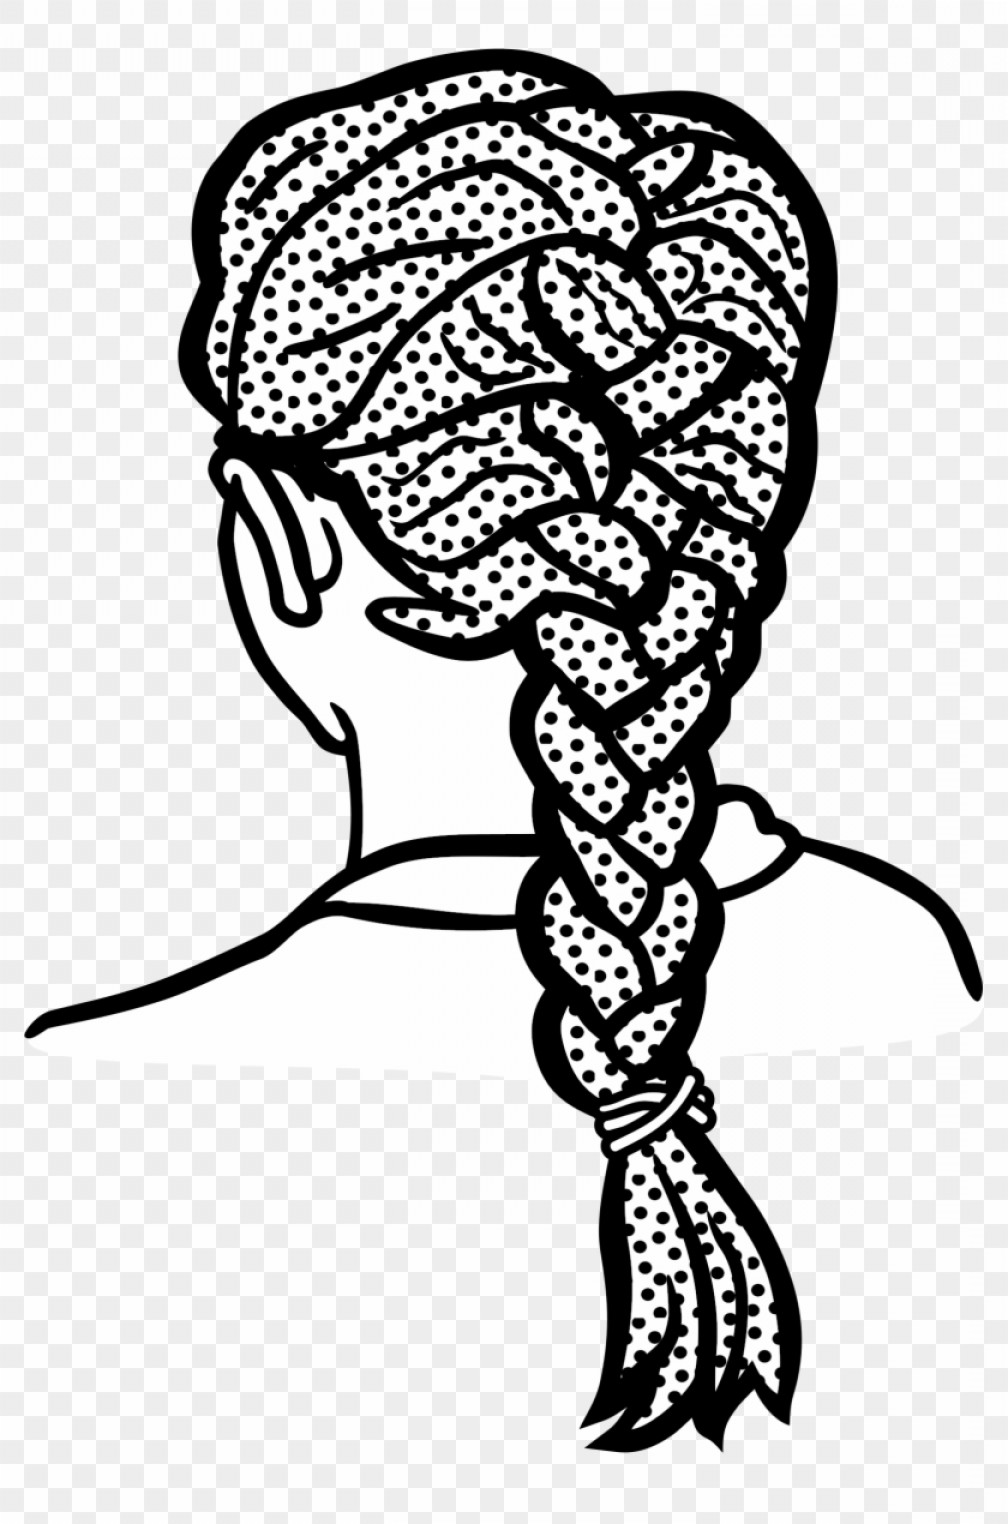 Trhxwxiafro Clipart Braiding Hair Braid Clipart Black And.